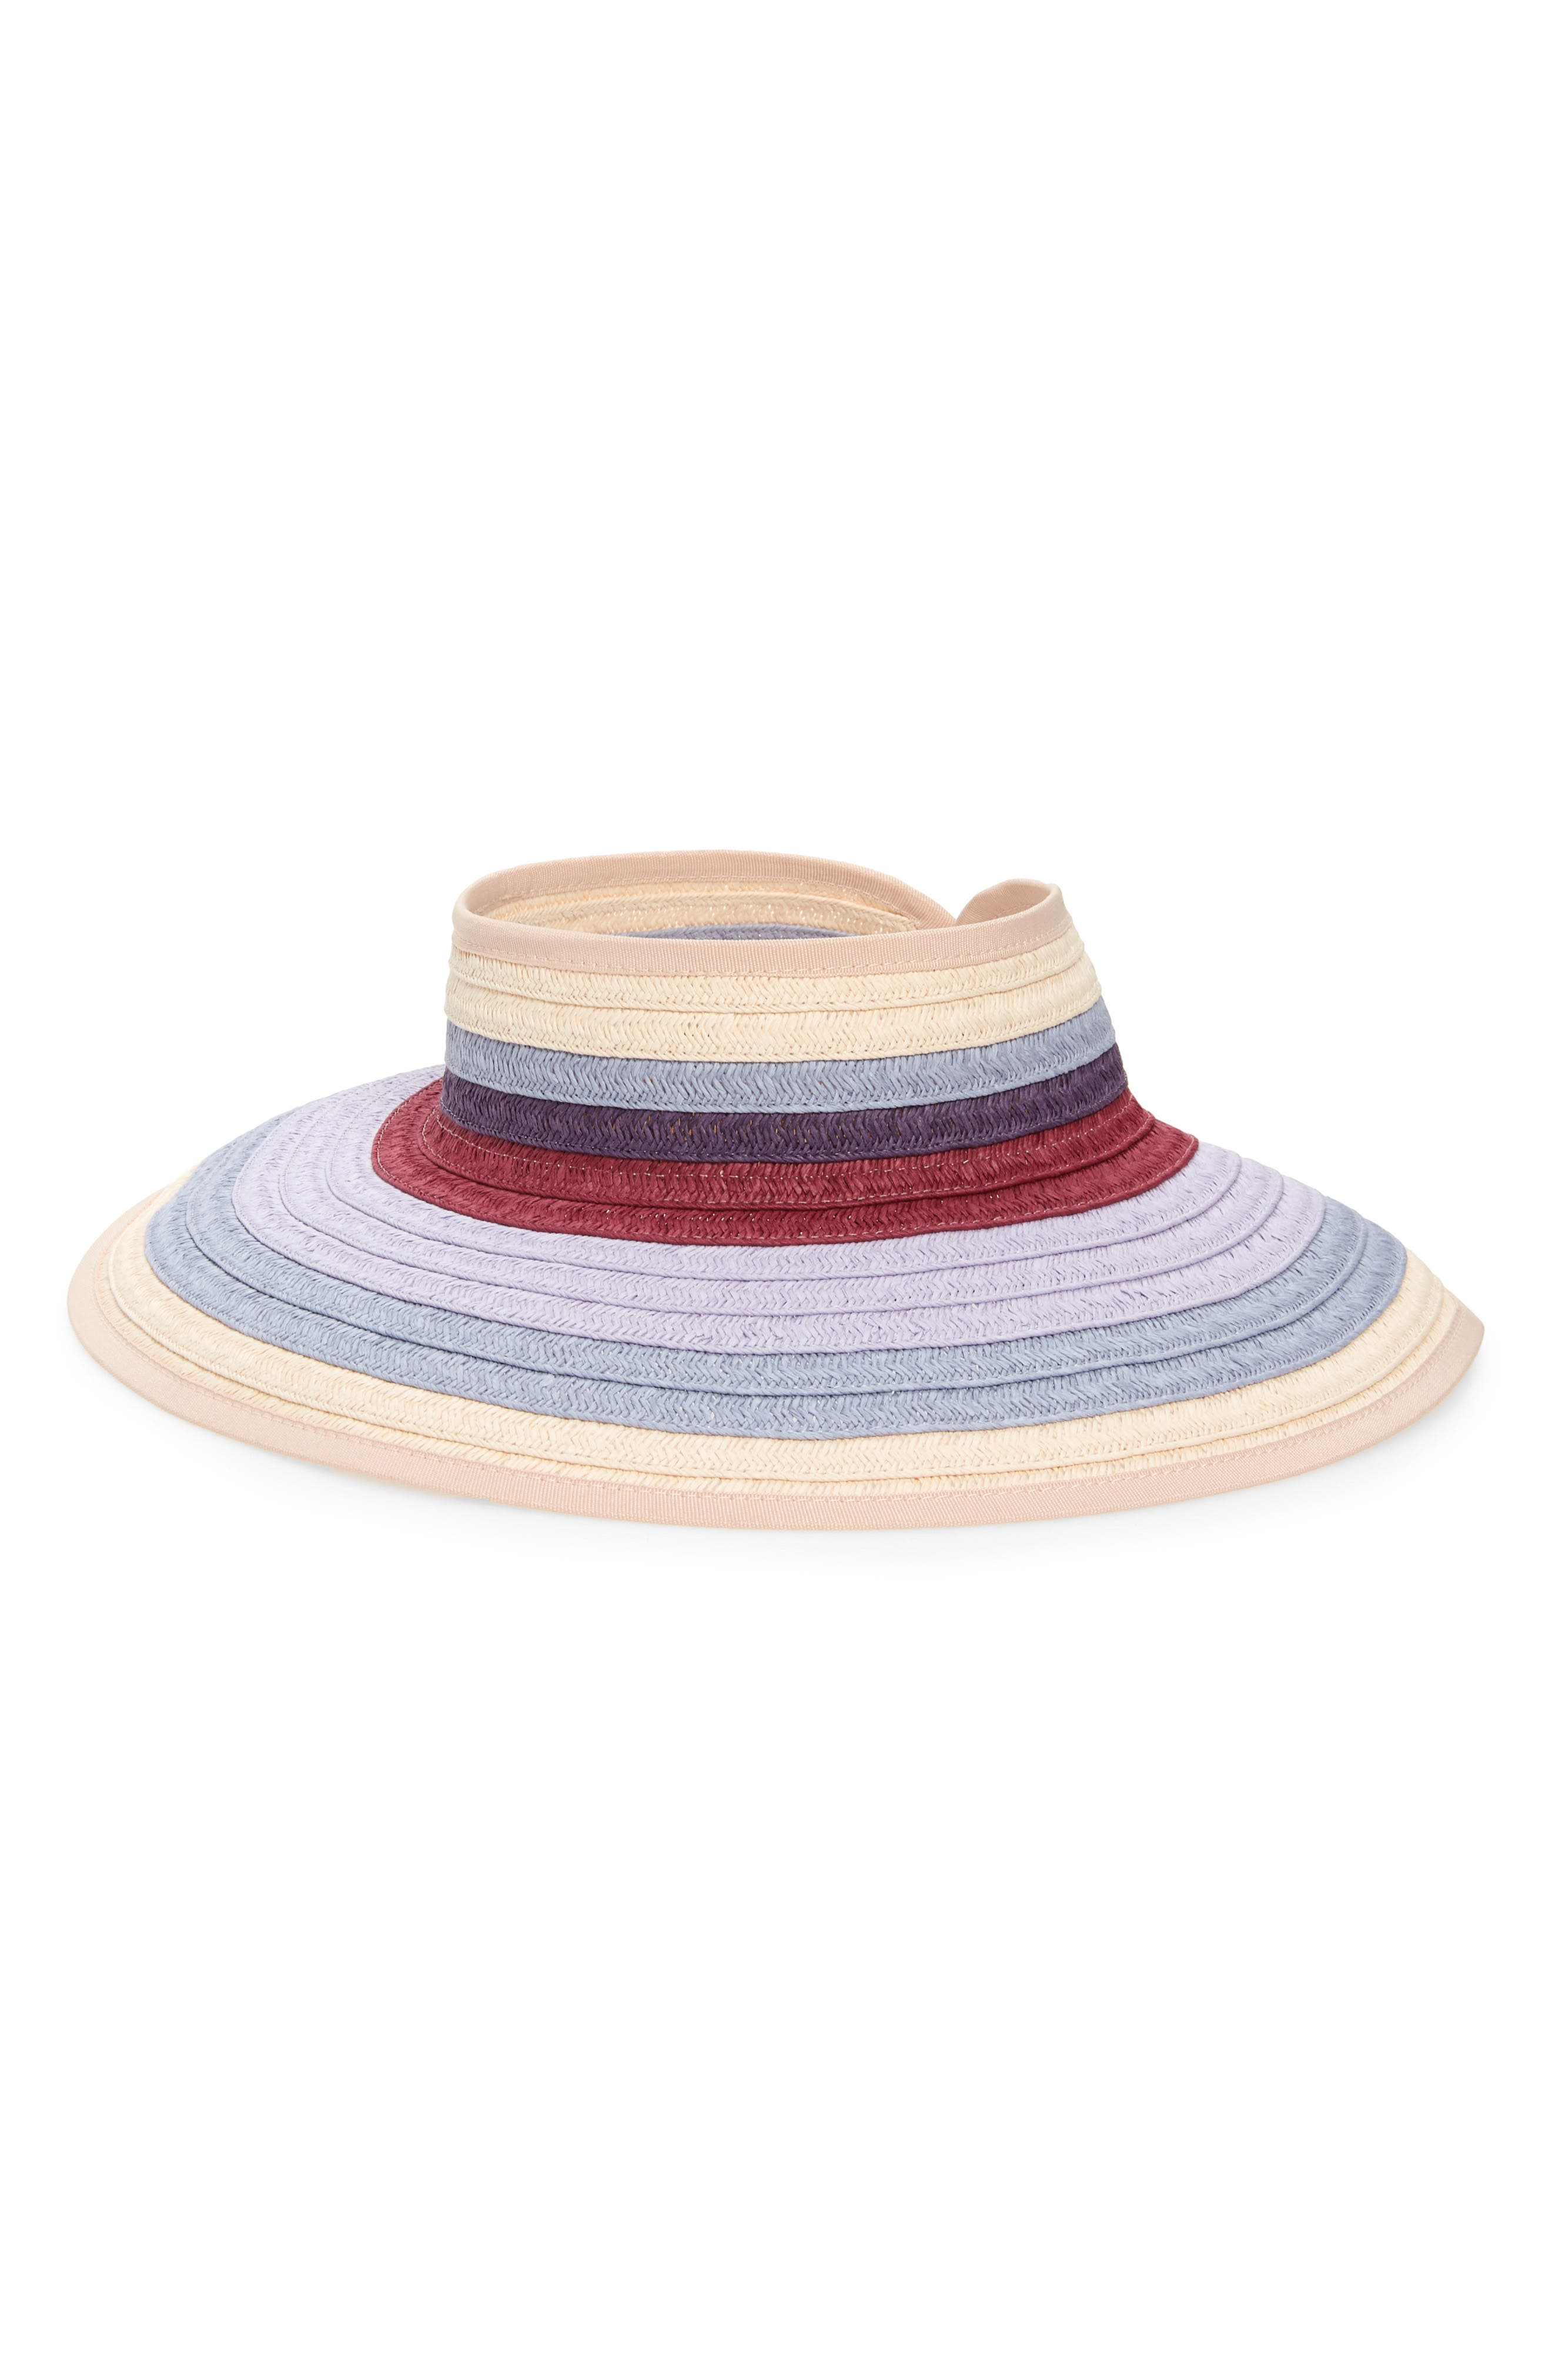 Sun protection plus colorful glamour-what a way to keep you cool. Canvas trims the wide, woven brim, while hook-and-loop tabs in back ensure a fully adjustable fit. Style Name: Nordstrom Multicolored Packable Visor. Style Number: 5762775. Available in stores.